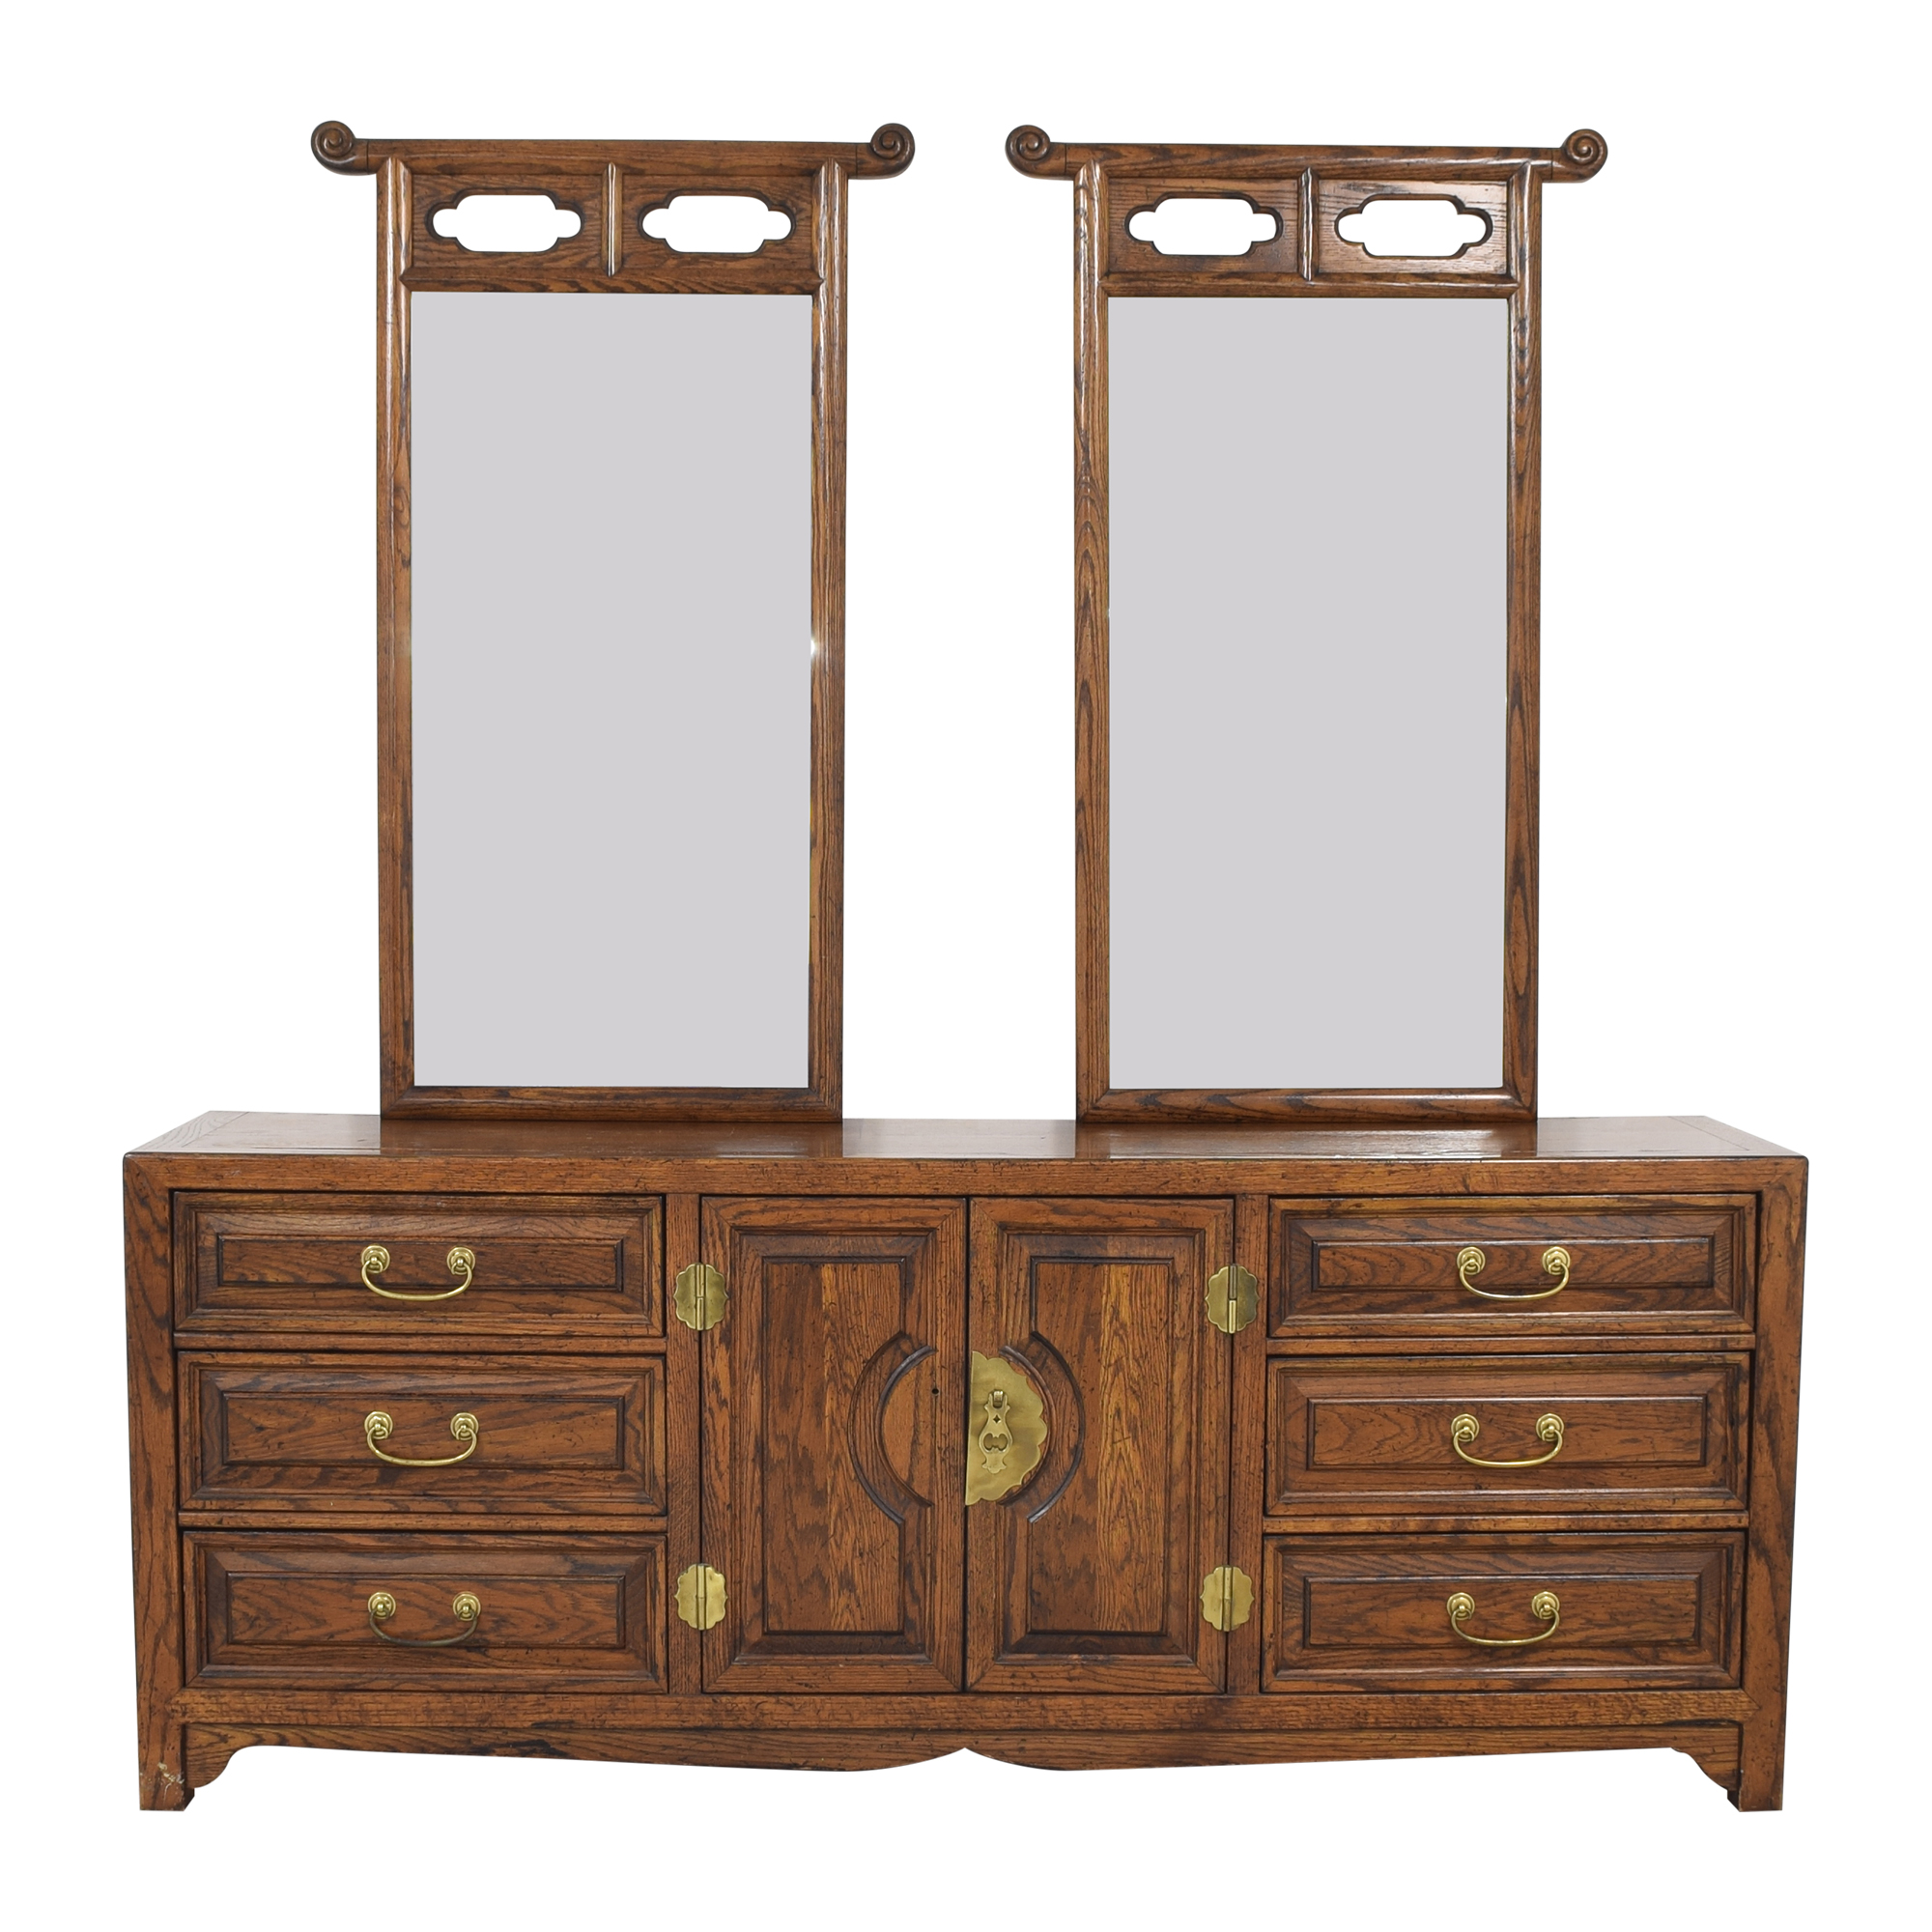 Century Furniture Century Furniture Nine Drawer Double Mirror Dresser nyc